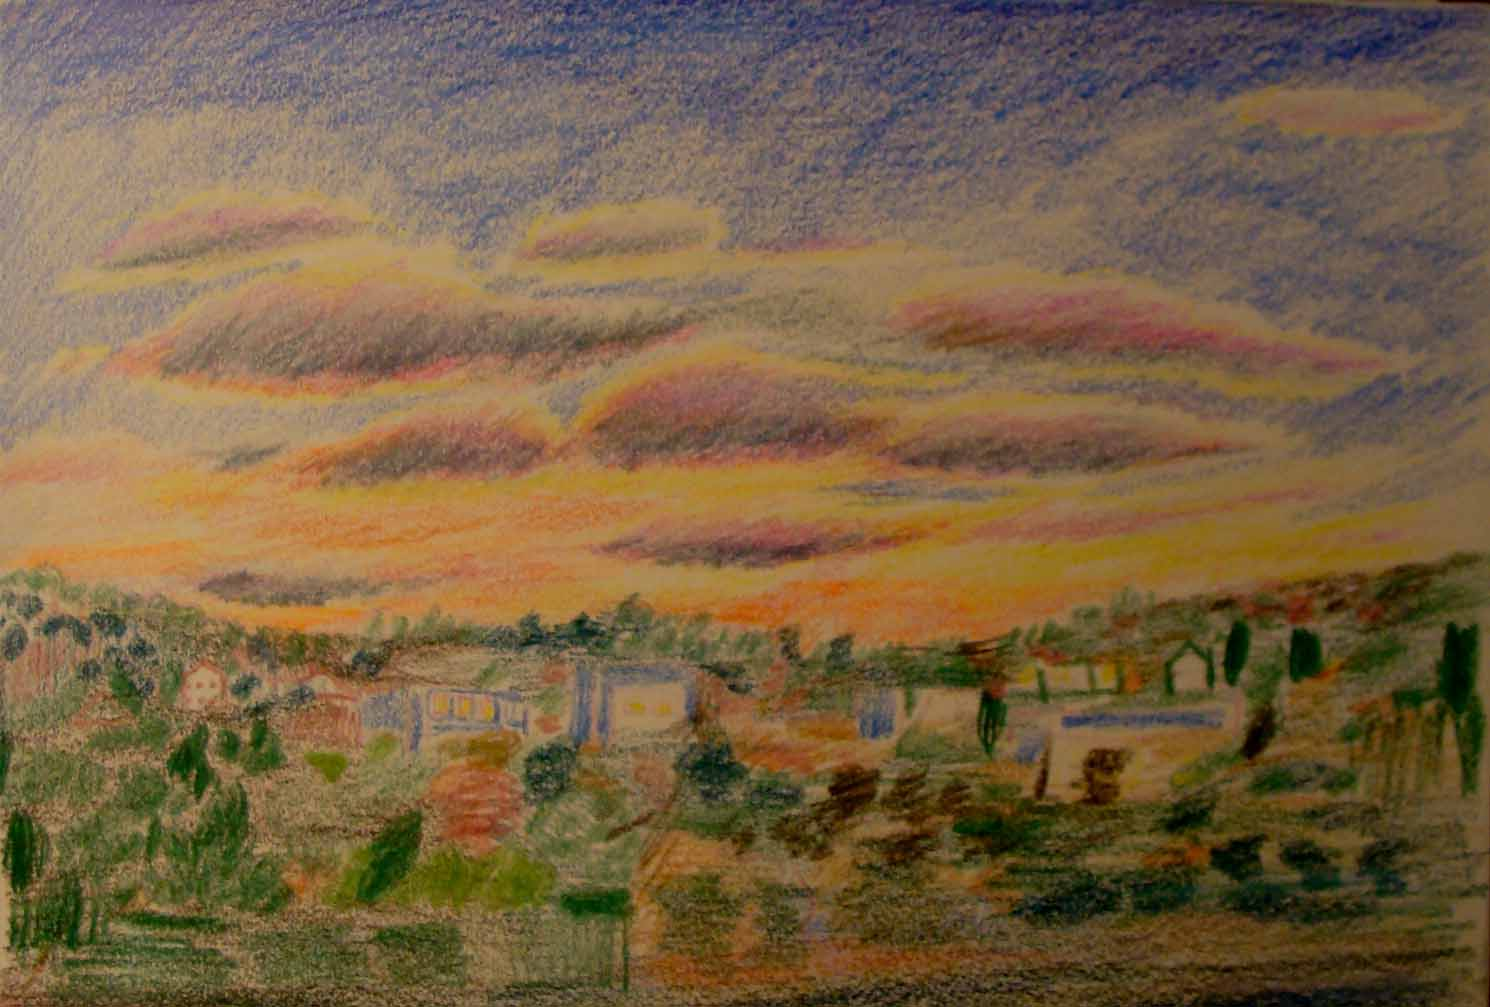 Hudson Valley from Bus Window (Wayne Ferrebee, 2015, color pencil and ink)